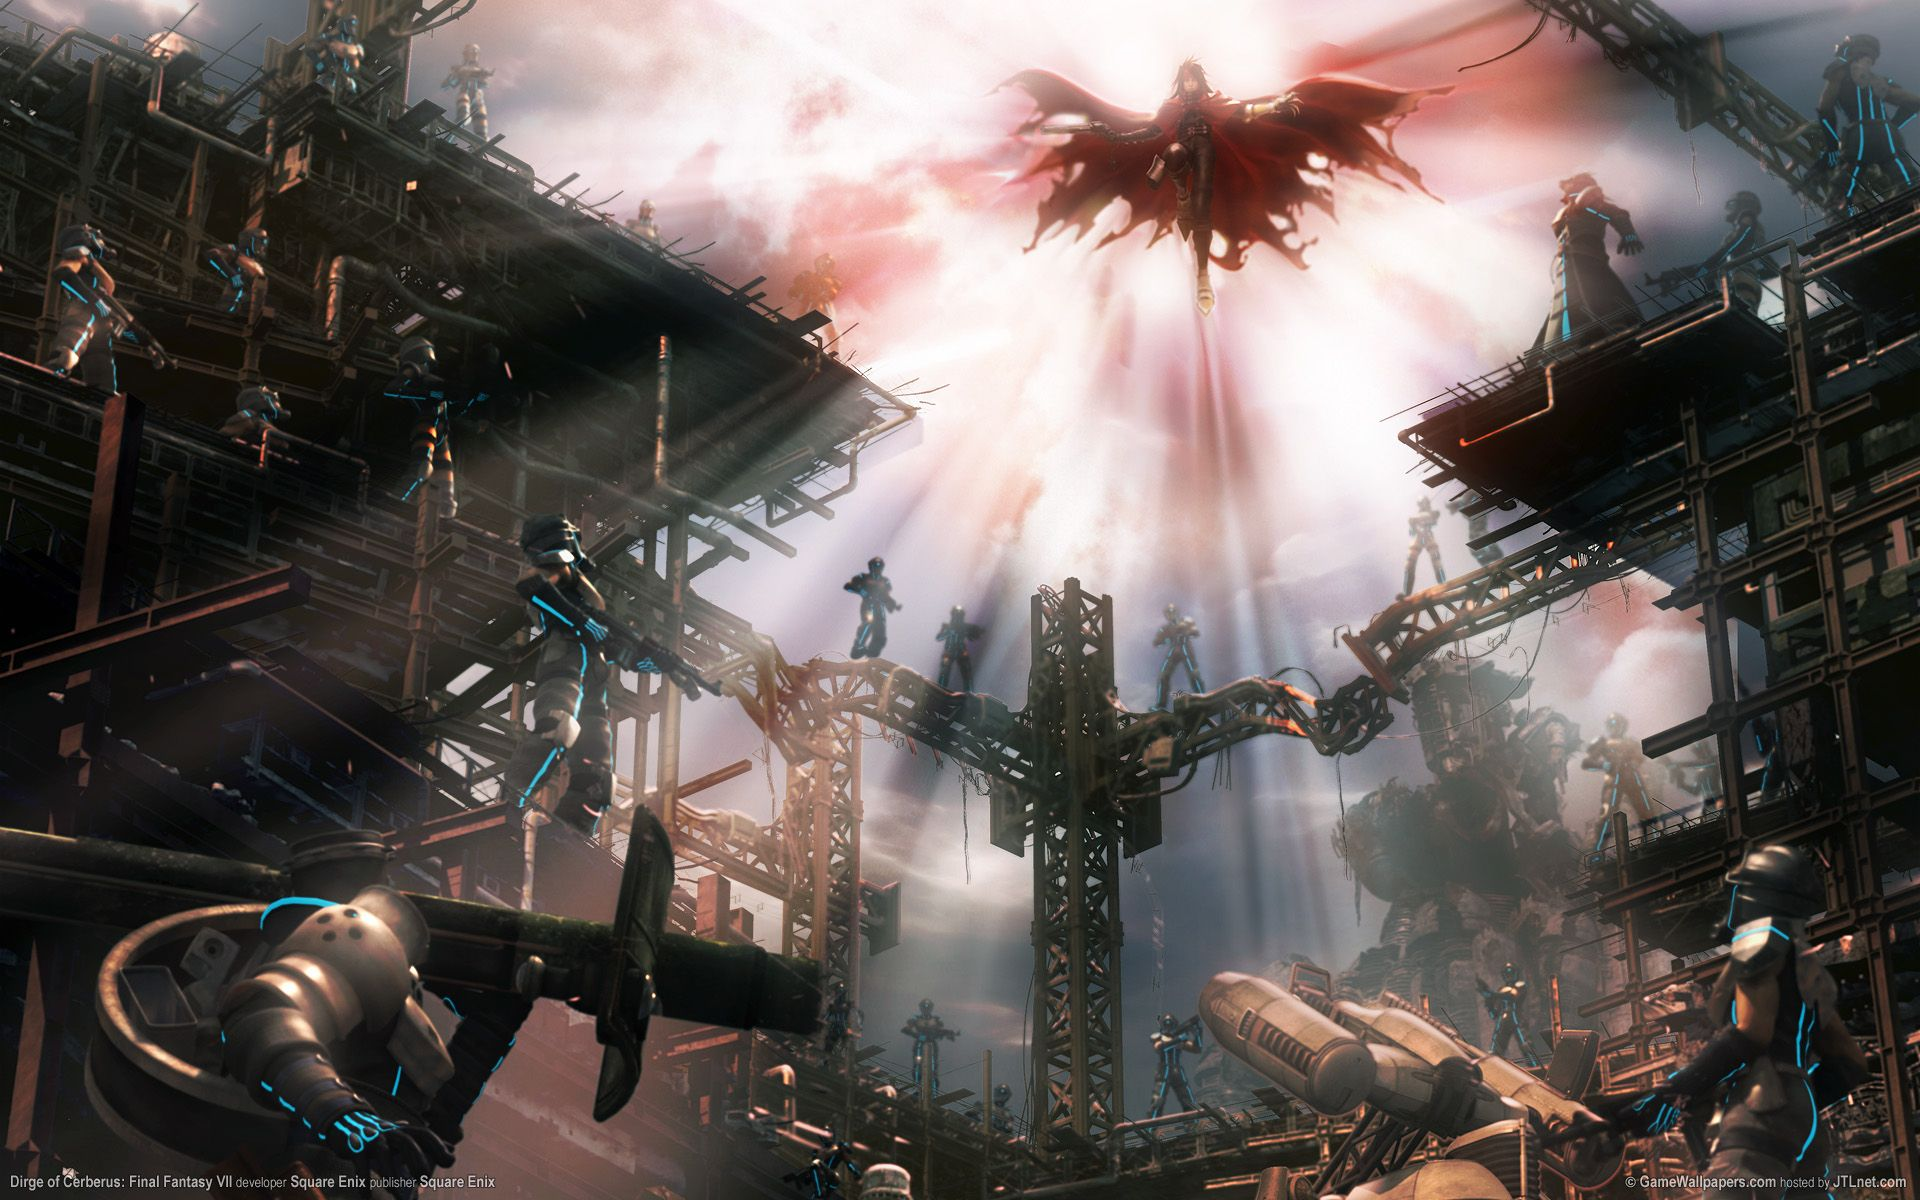 89 final fantasy vii advent children hd wallpapers backgrounds - Final Fantasy Hd Wallpaper 1920x1200 Wallpapers 1920x1200 Wallpapers